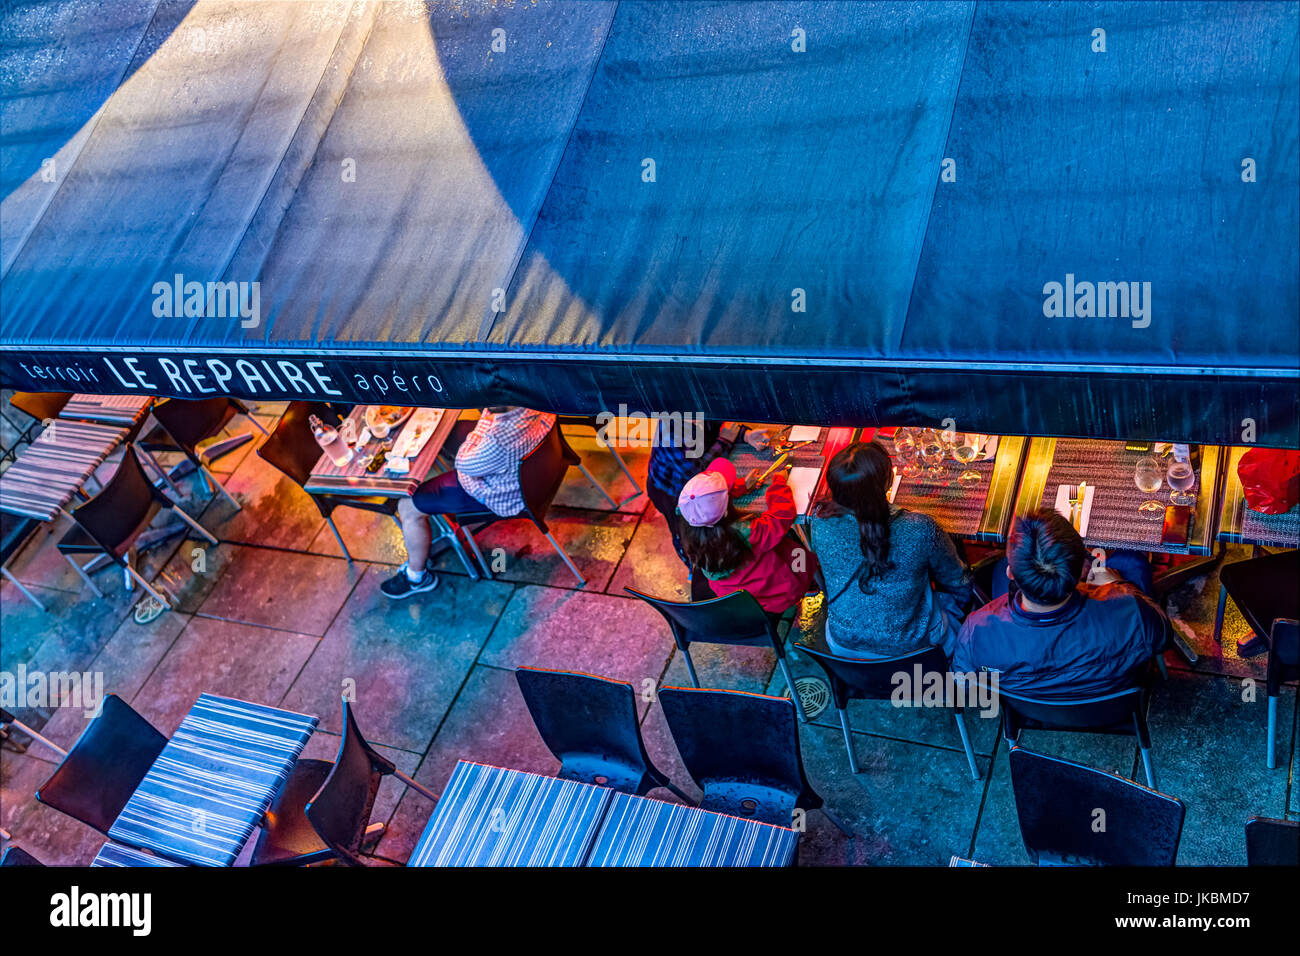 Quebec City, Canada - May 31, 2017: Le Repaire restaurant sign and people sitting, eating on outdoor tables during - Stock Image